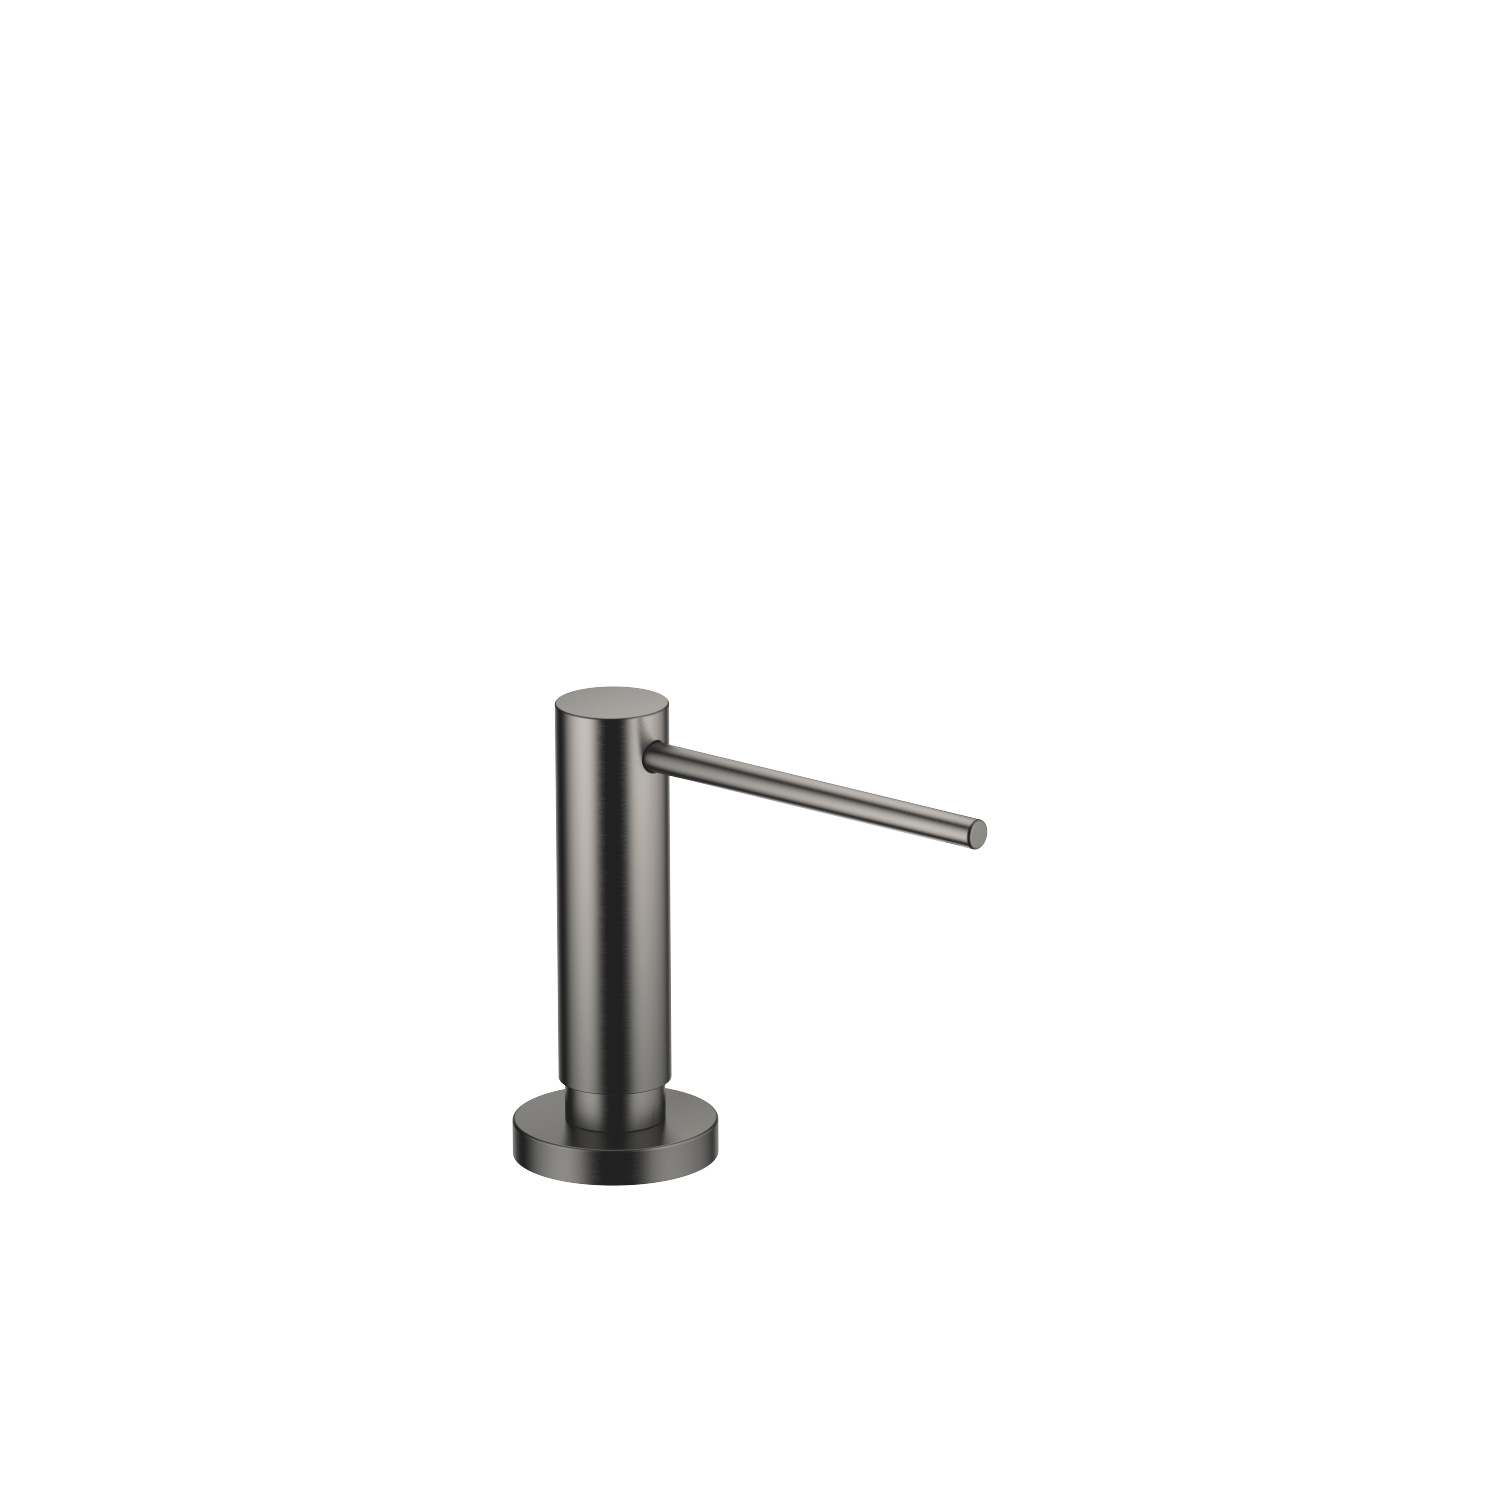 Dispensador con roseta - Dark Platinum matt